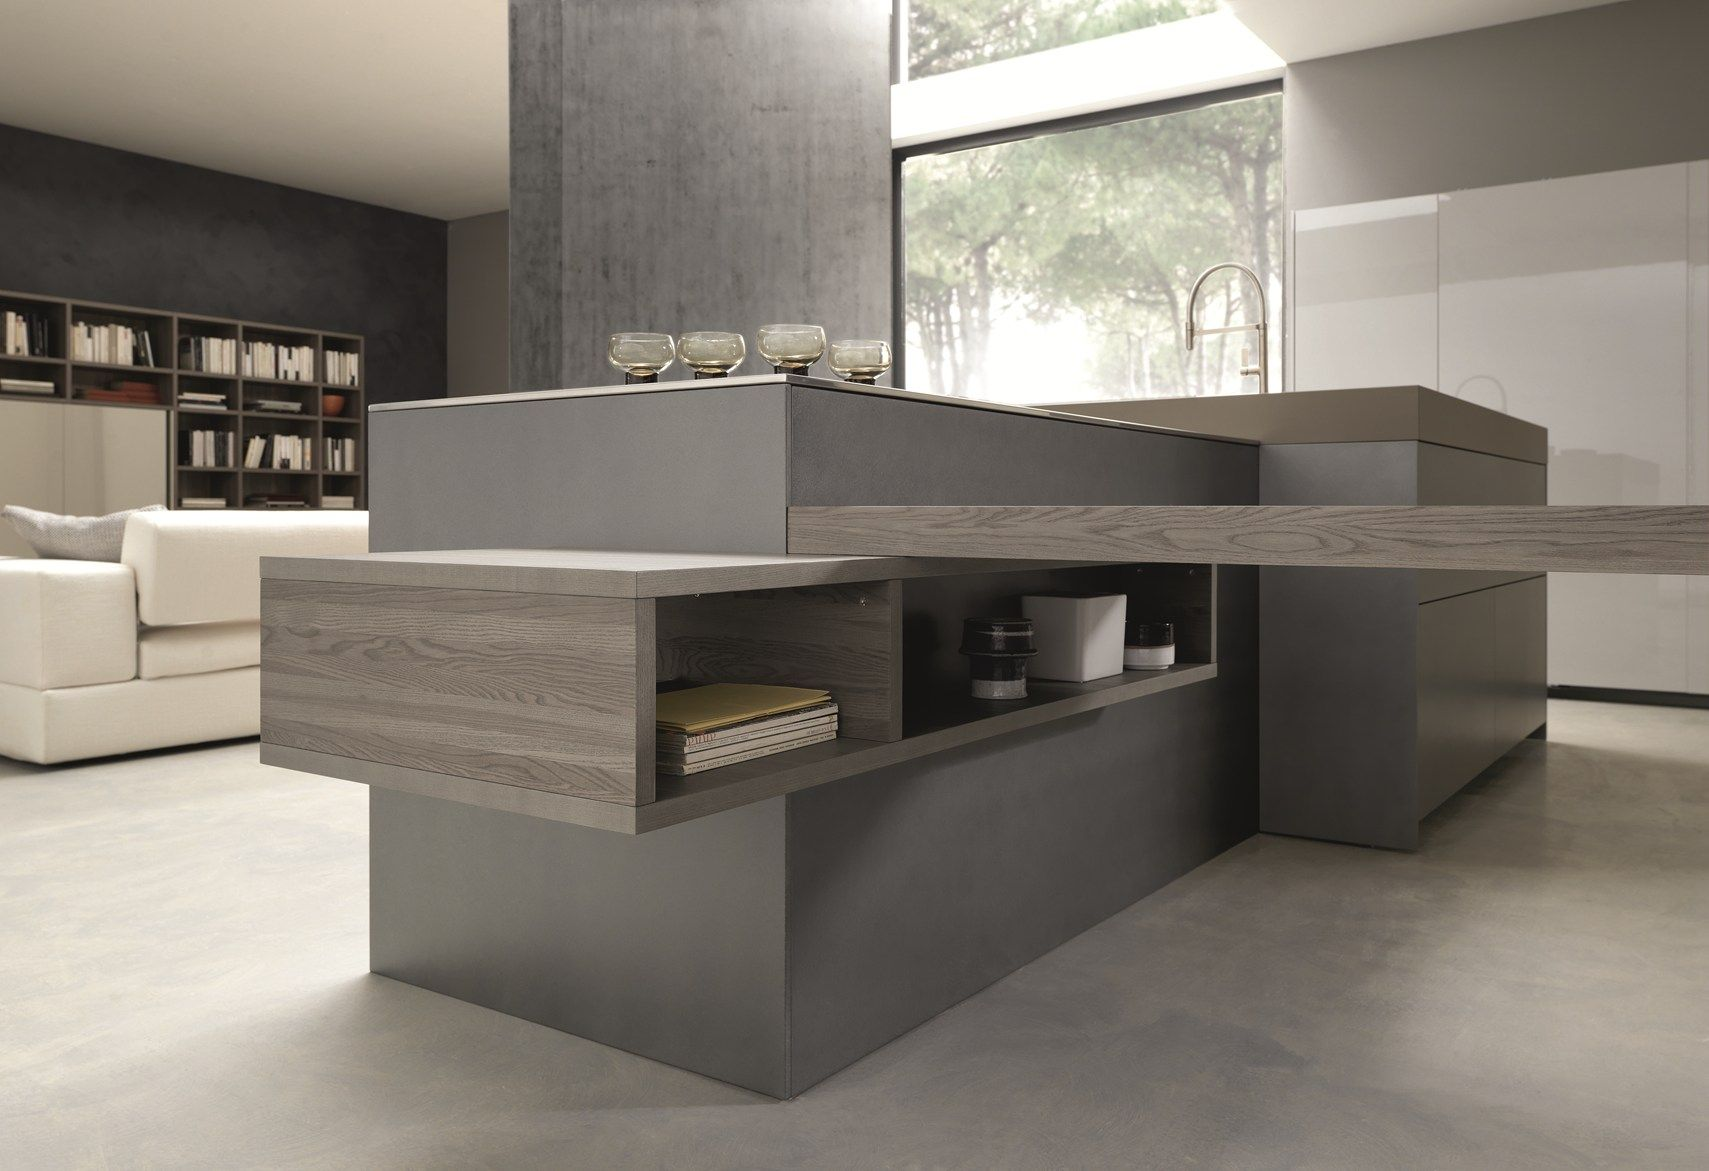 Best Comprex Cucine Prezzi Photos - Ideas & Design 2017 ...